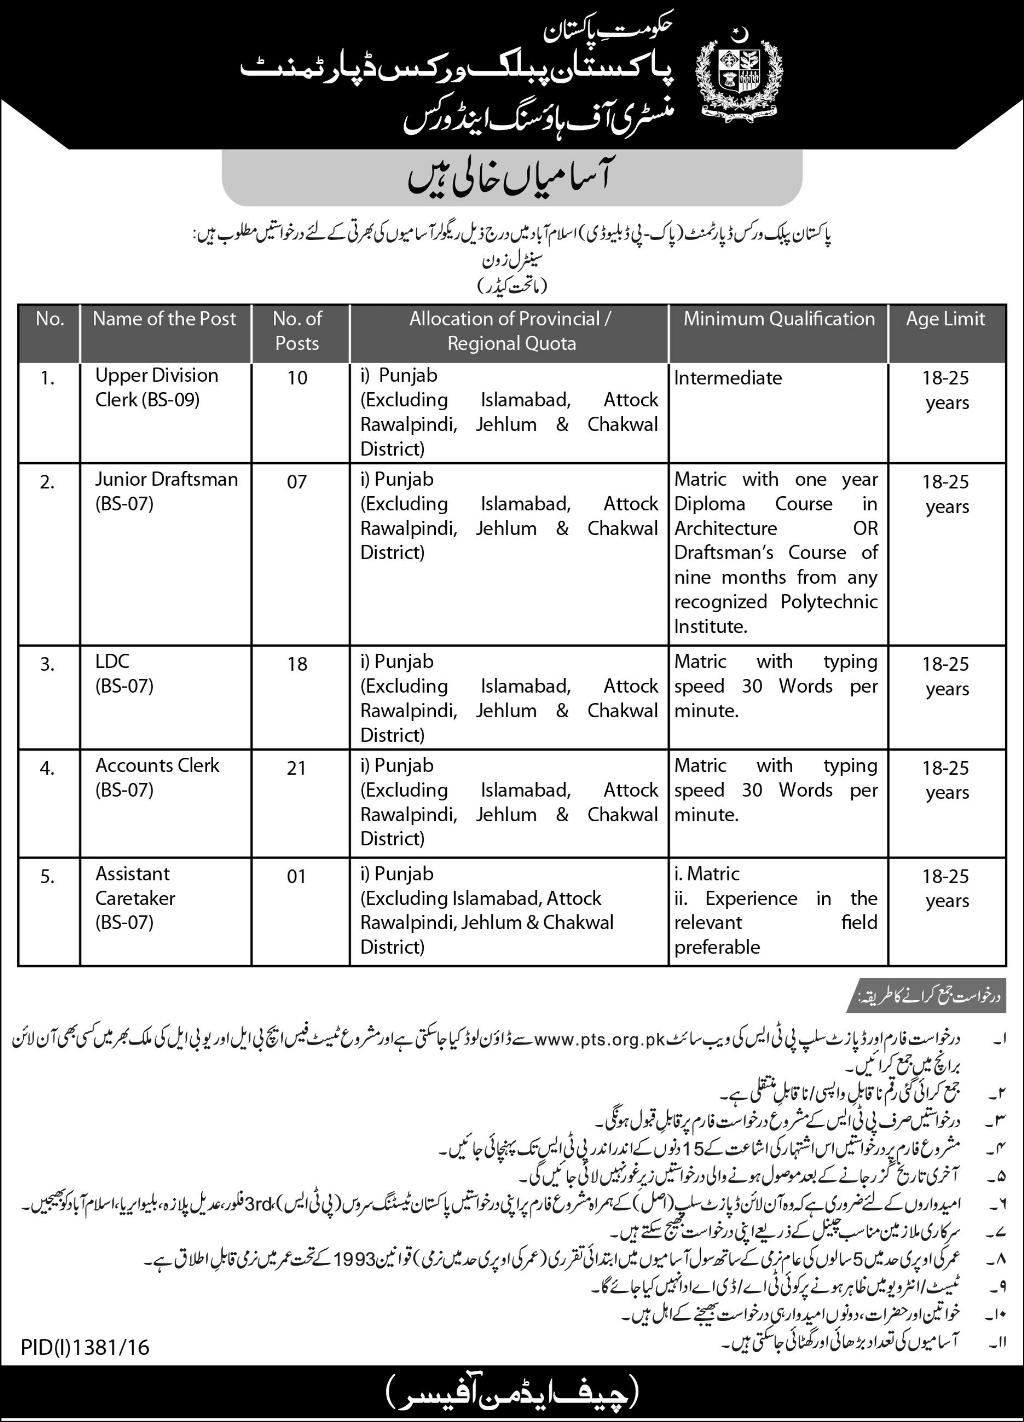 PWD Jobs 2016 for Punjab Pakistan Public Works Department